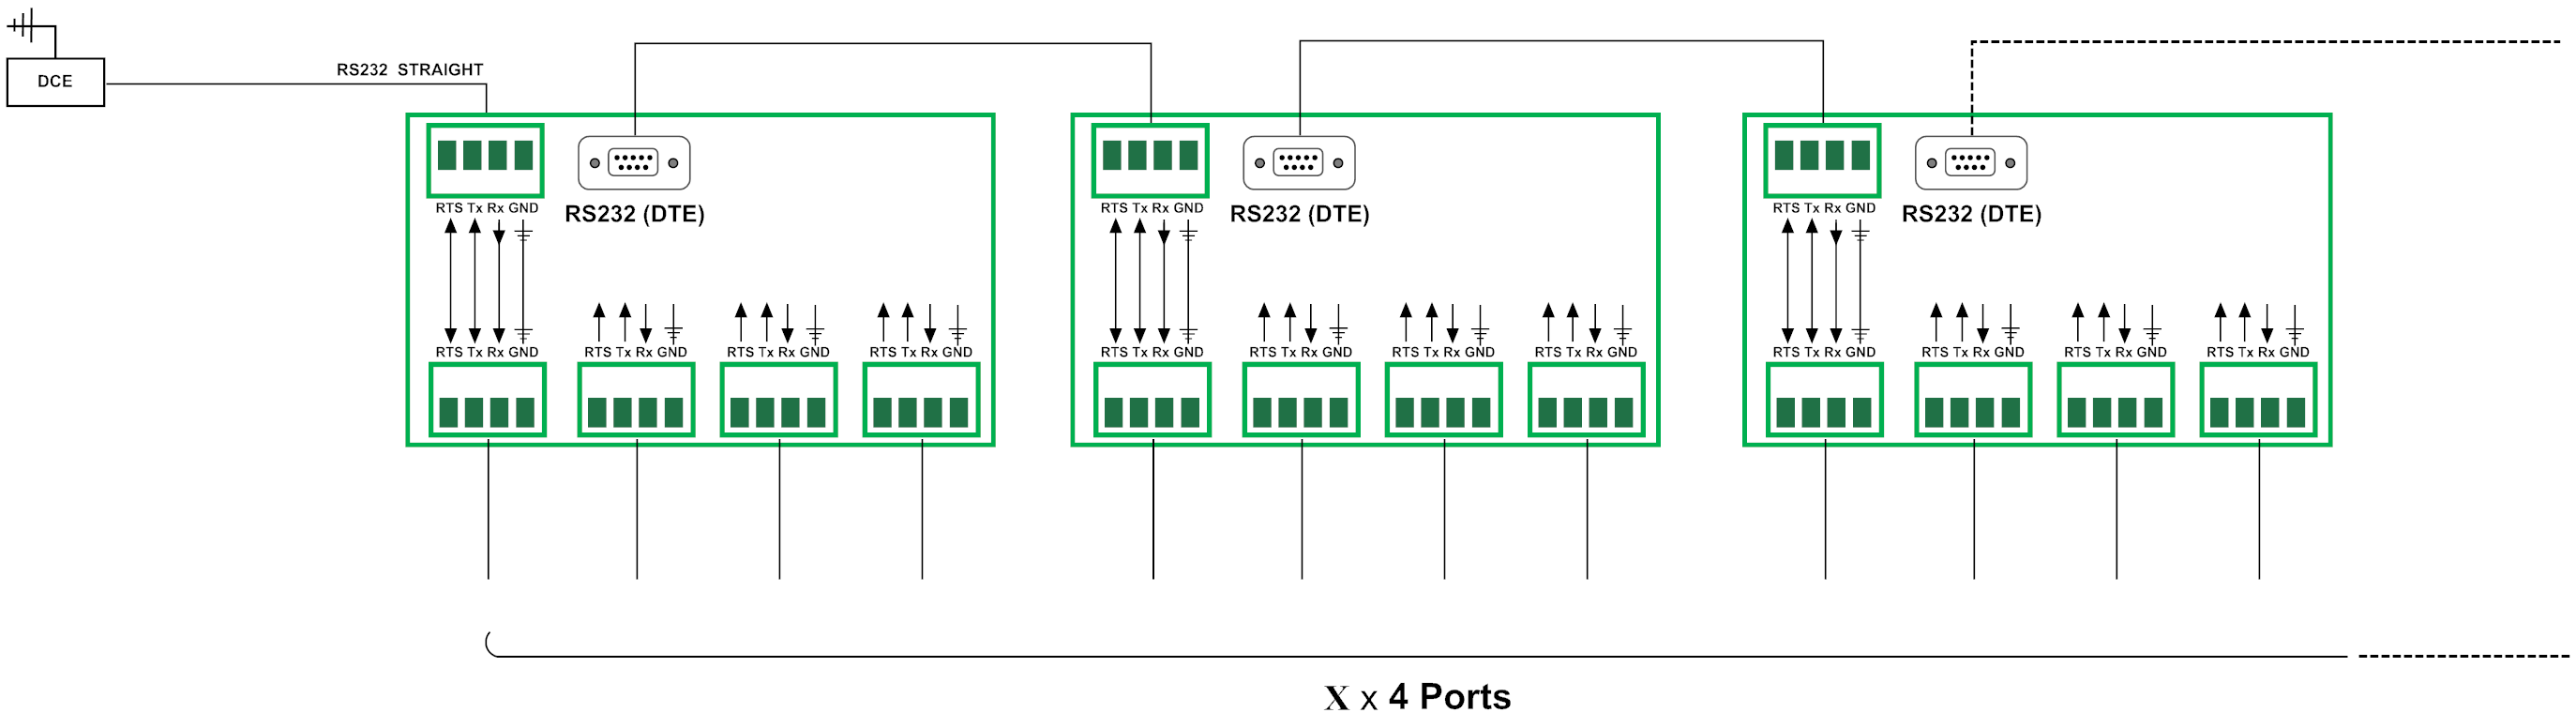 Scadalink Spl4 Tb Rs232 Splitter Class I Div 2 Schematic Example Application For Connecting Multiple Serial Devices To A Single Modem Or Radio